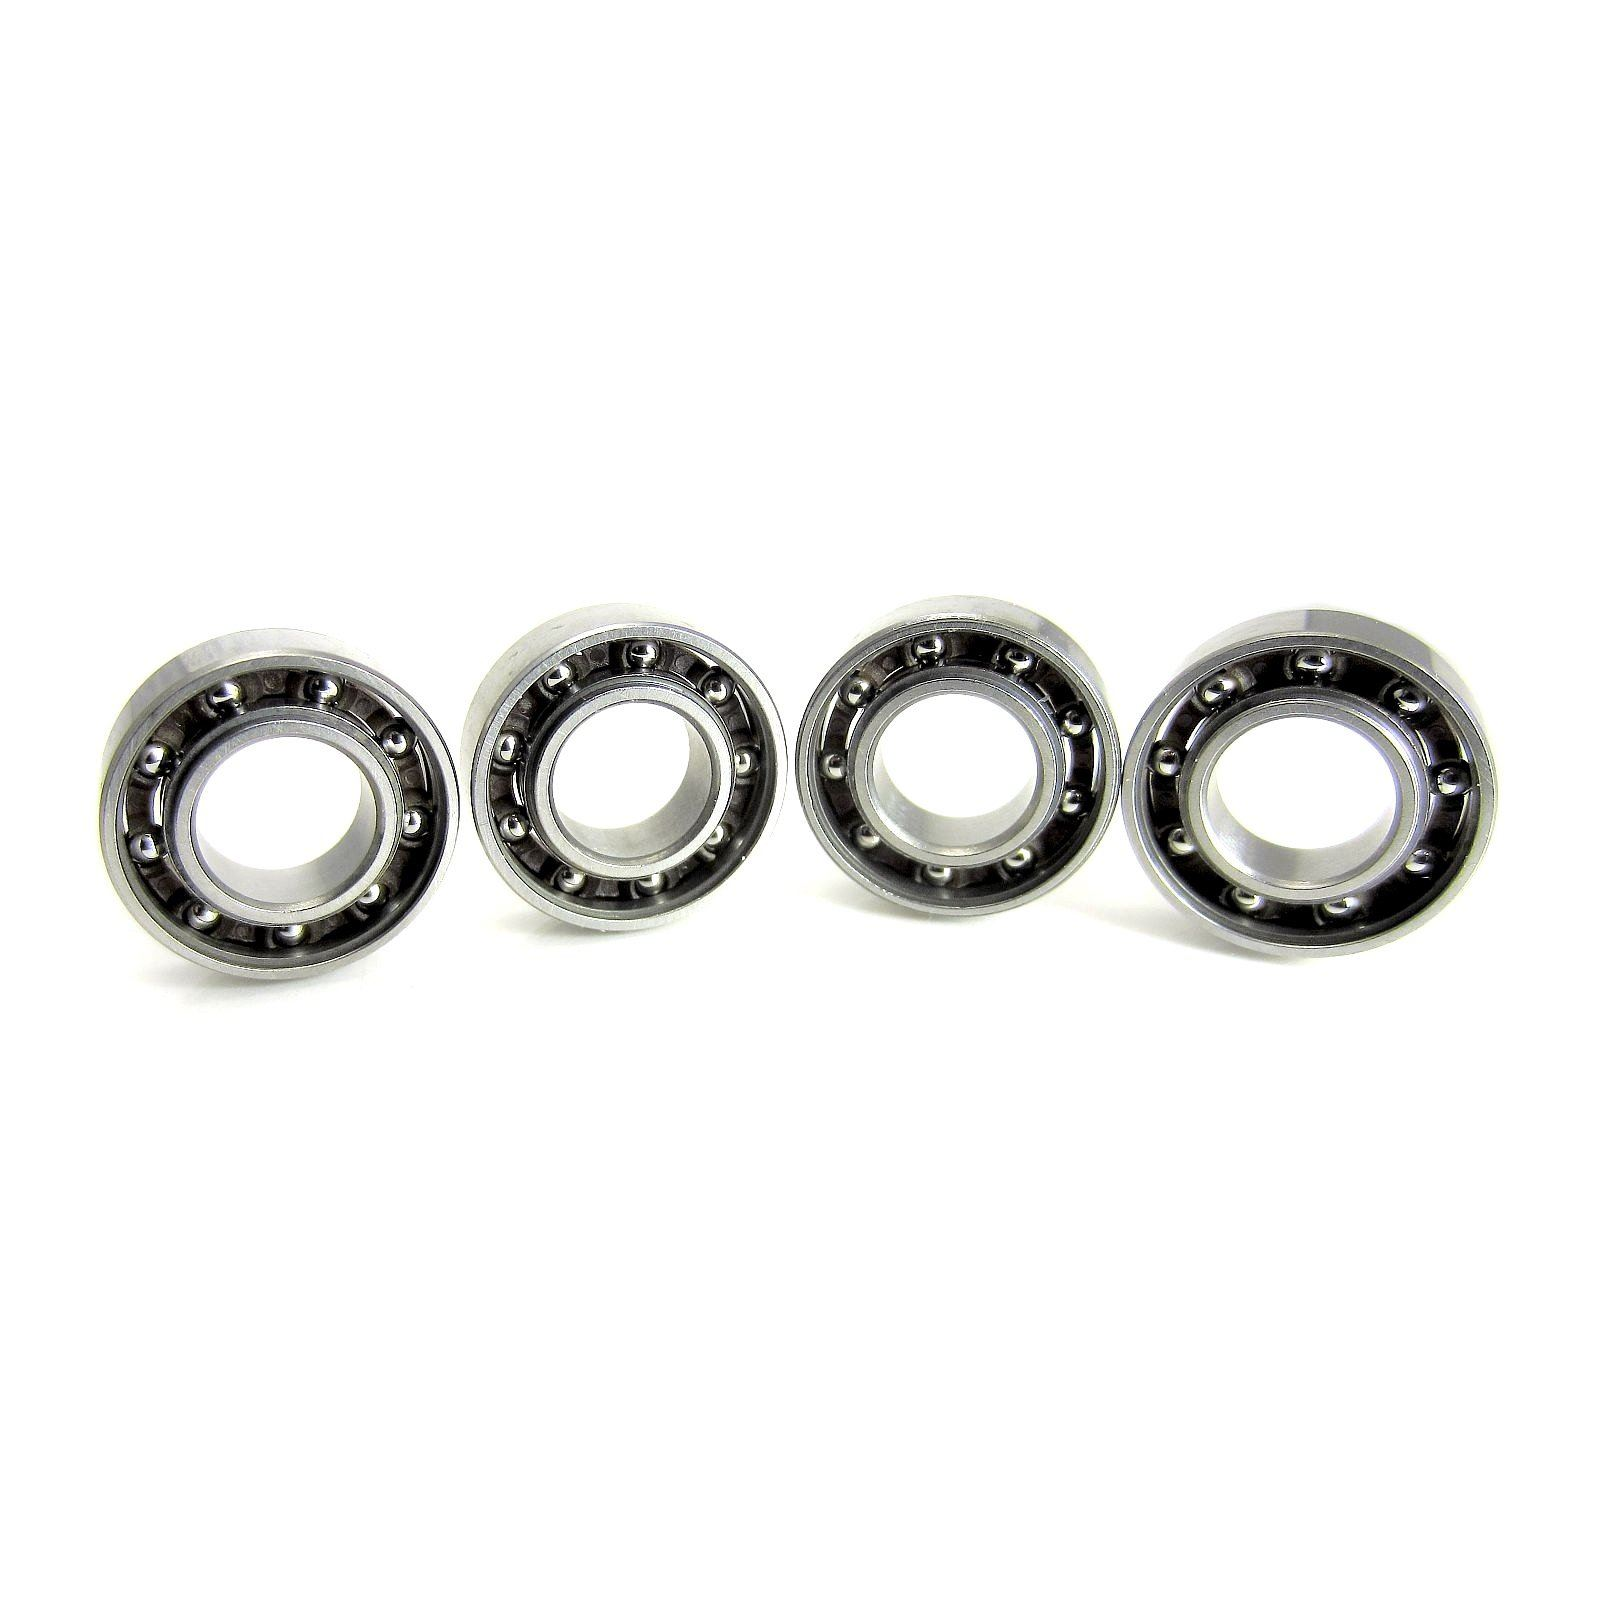 8x16x5mm 688  Open A5 Precision Ball Bearings (4) by TRB RC - trb-rc-bearings